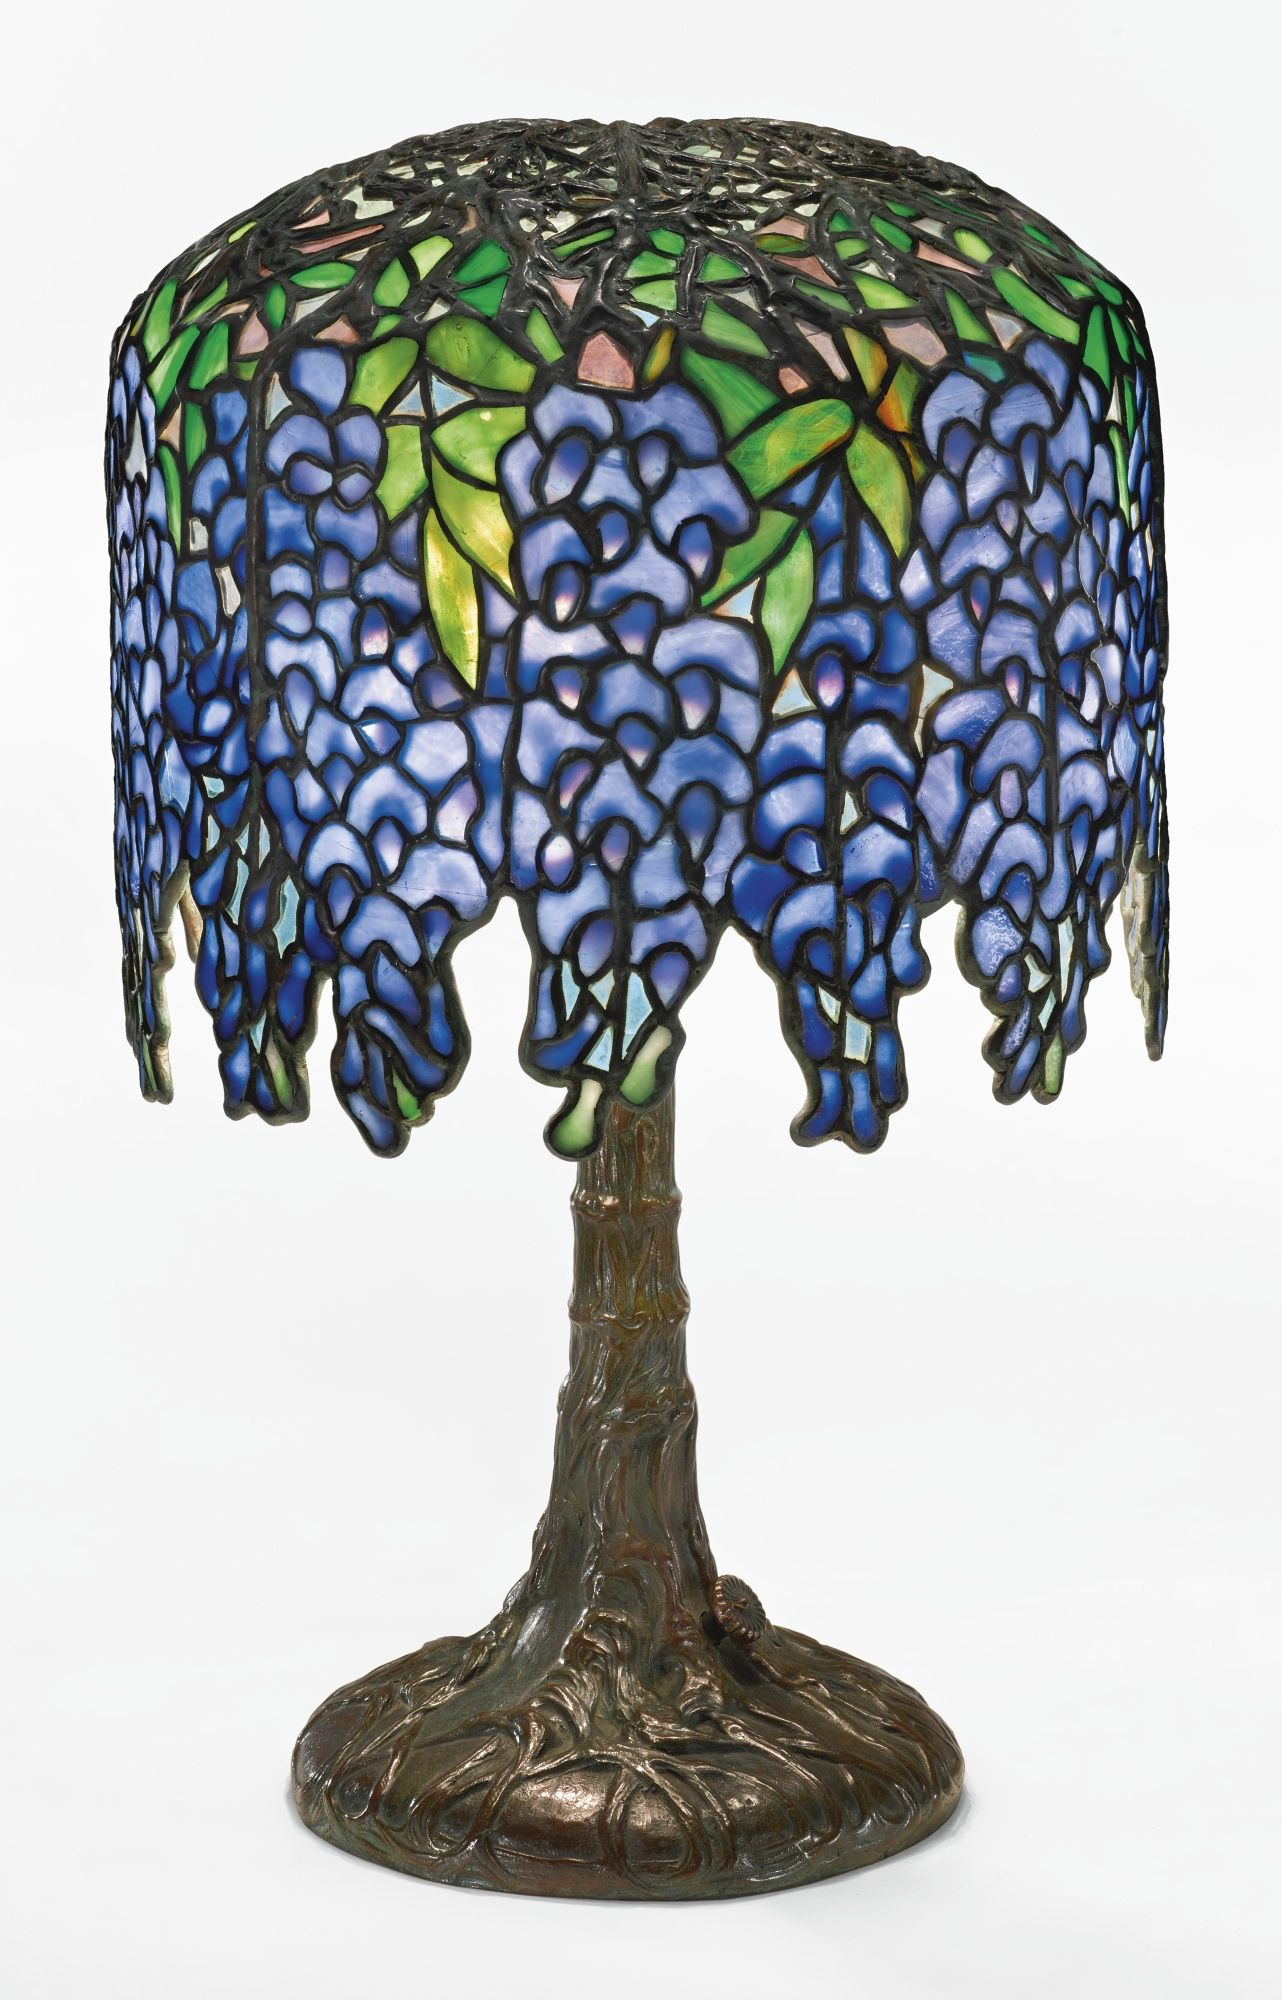 Tiffany studios pony wisteria table lamp shade impressed tiffany tiffany studios pony wisteria table lamp shade impressed tiffany studios new york and 349 aloadofball Image collections